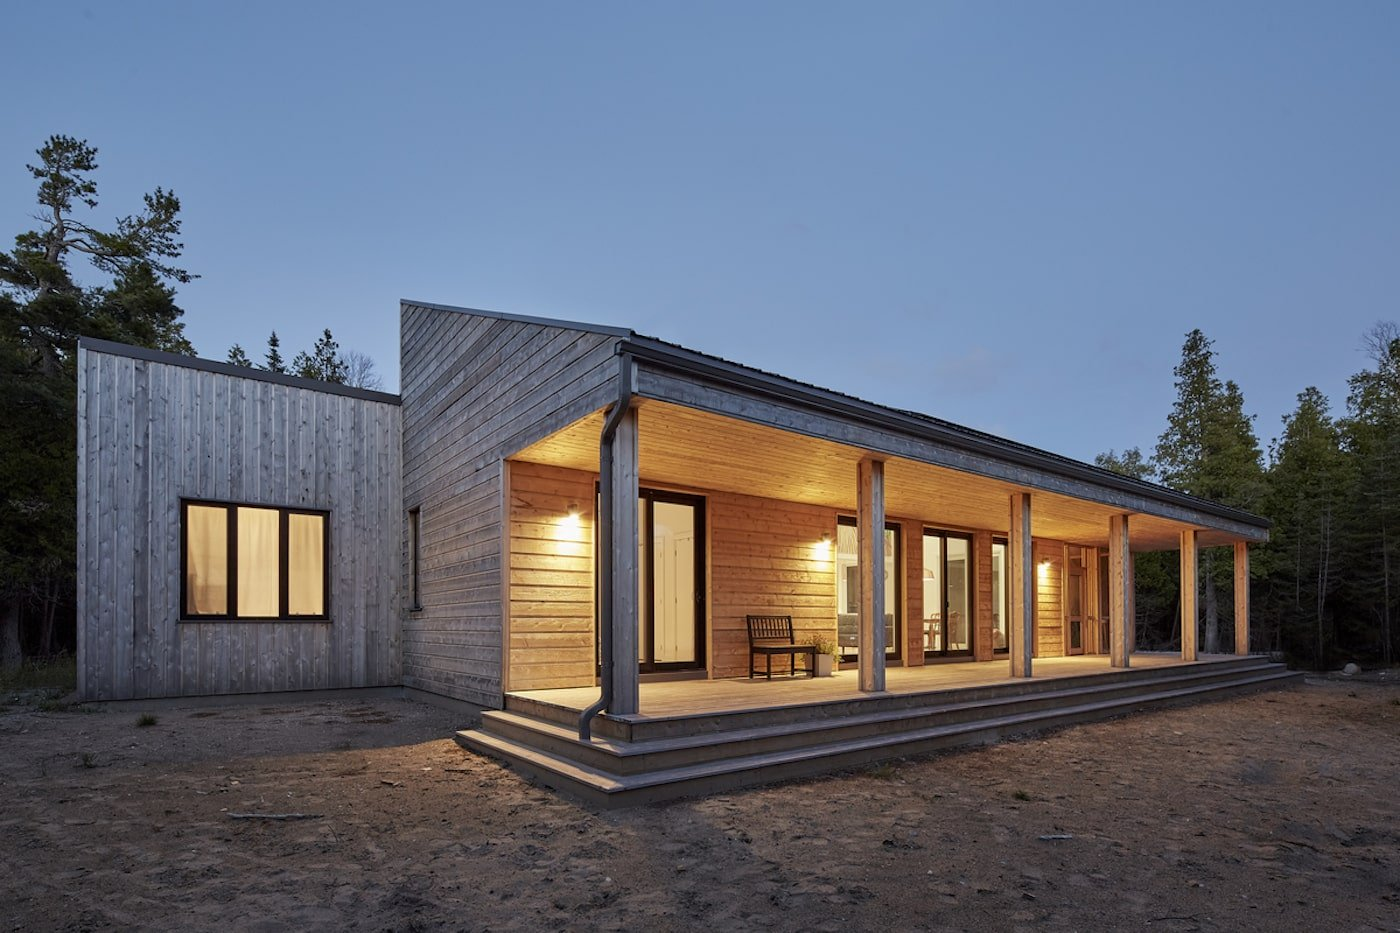 Exterior of off-grid island home at dusk